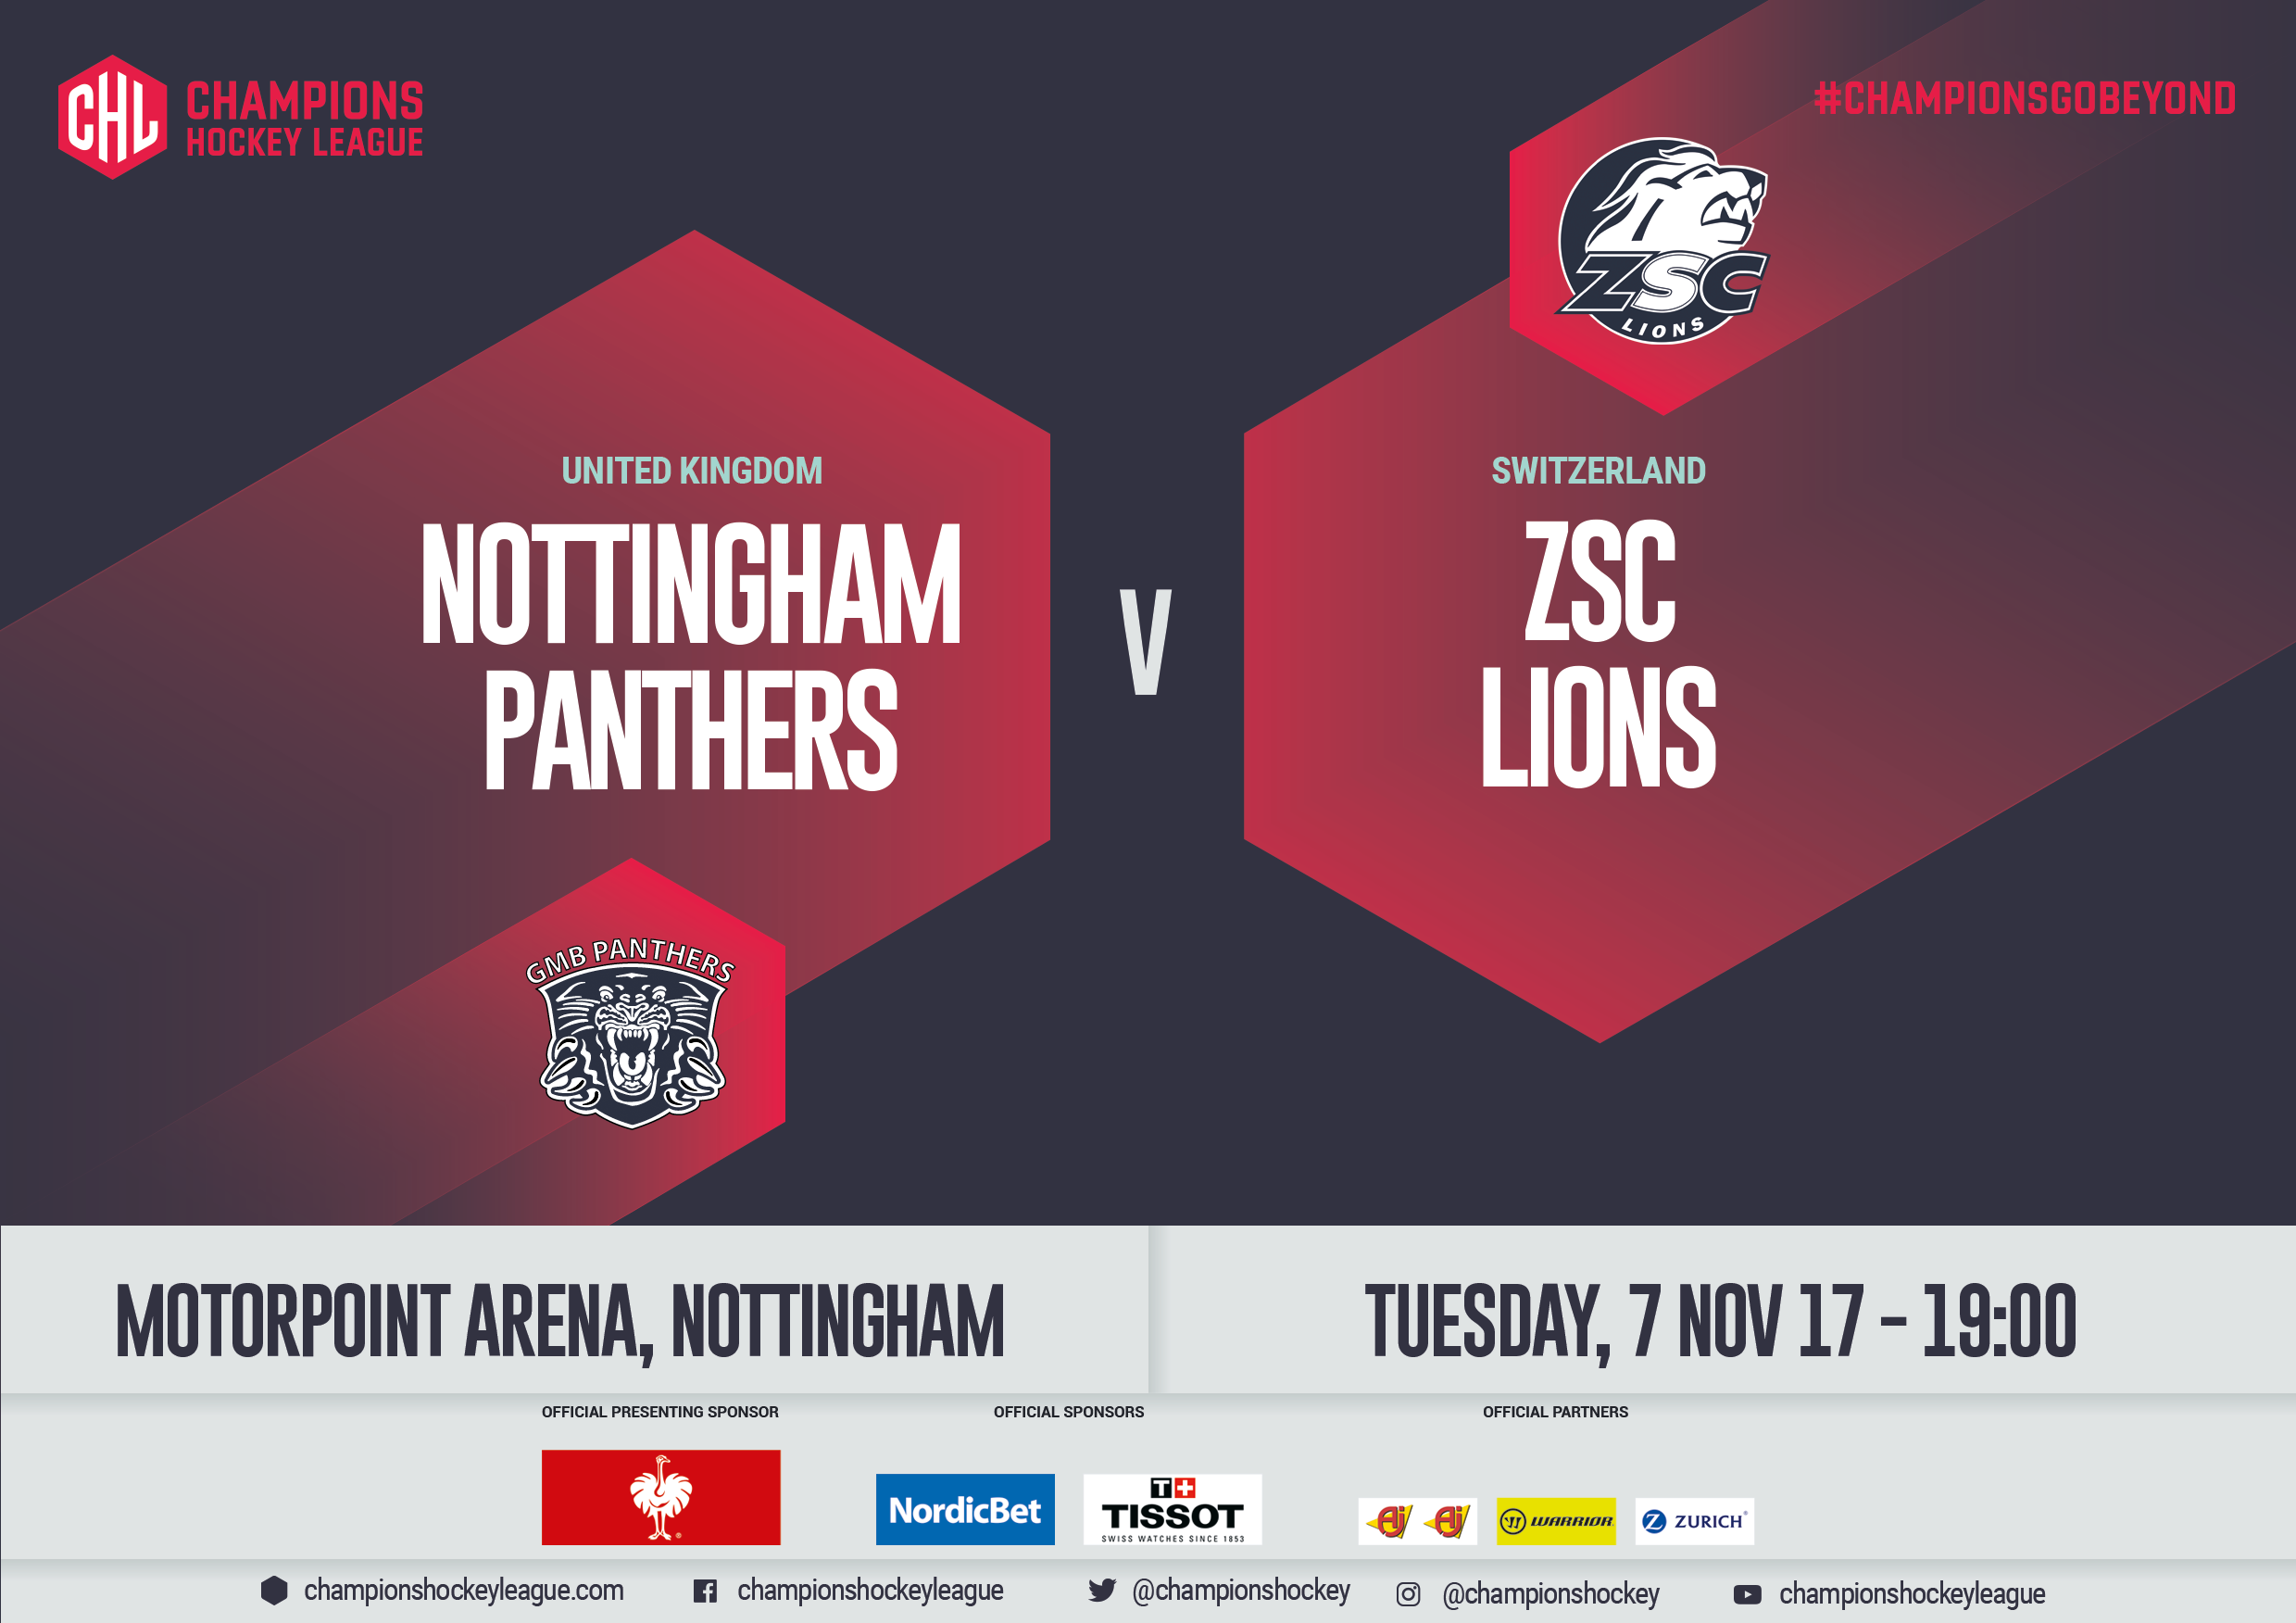 Panthers v Zurich ticket prices slashed Top Image